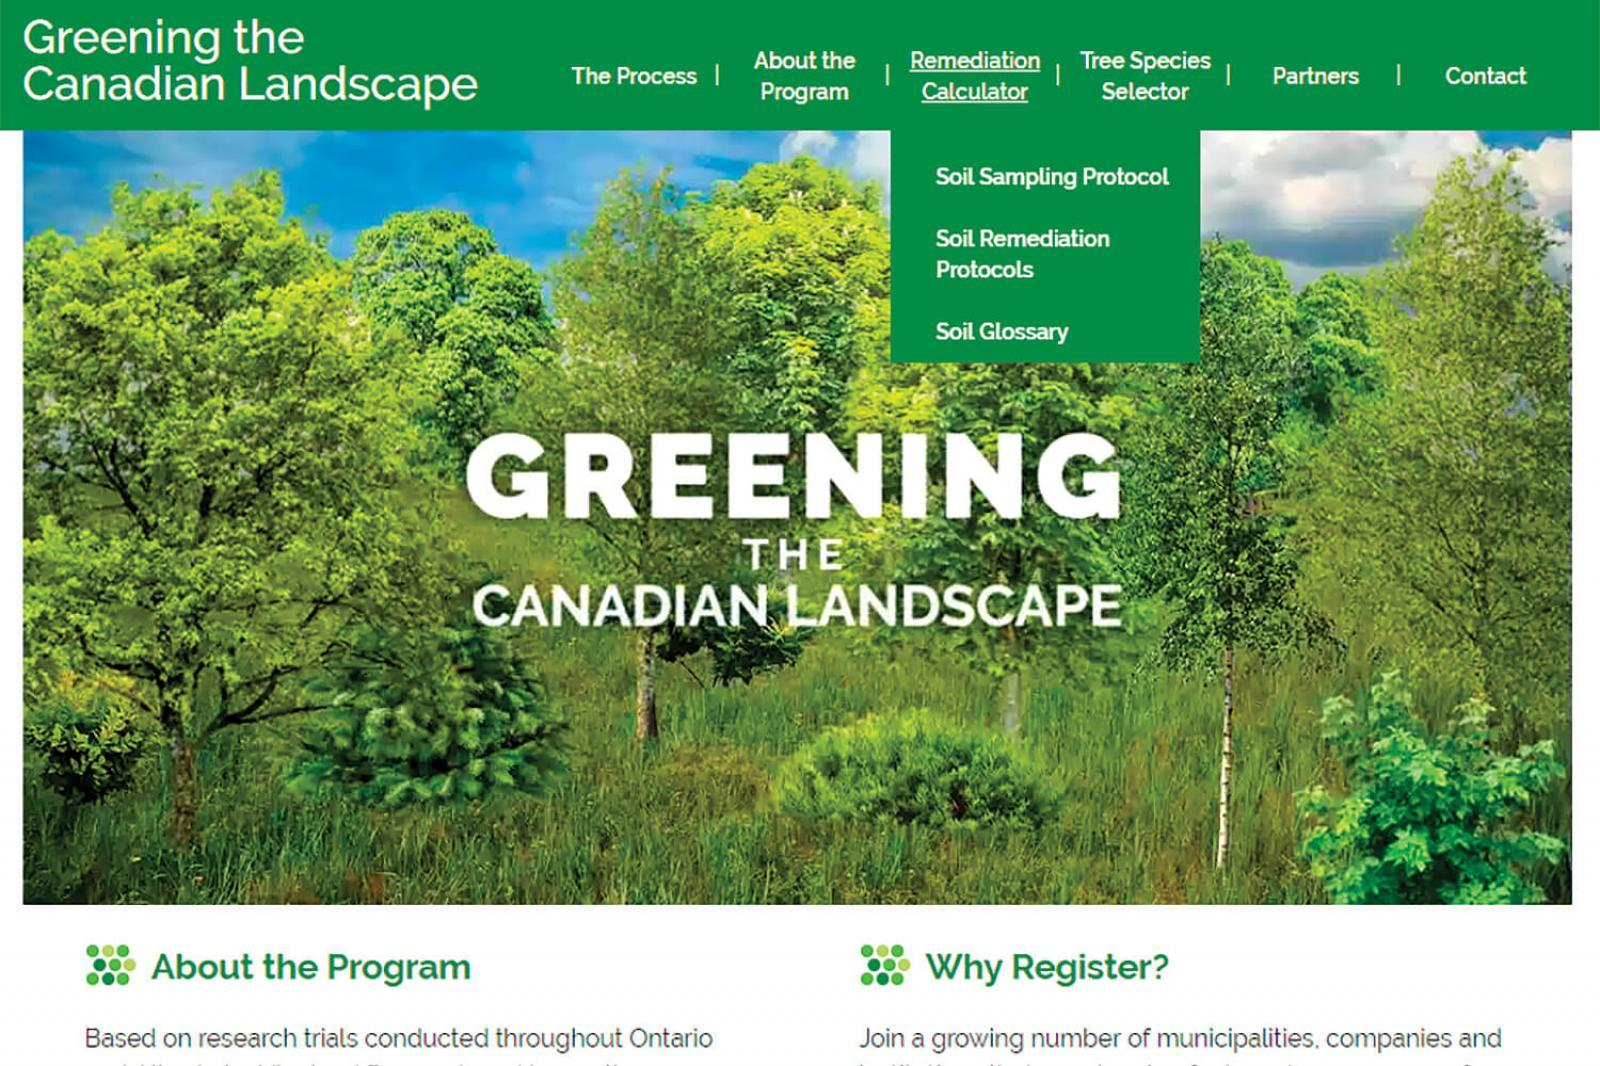 Online tool promotes tree success